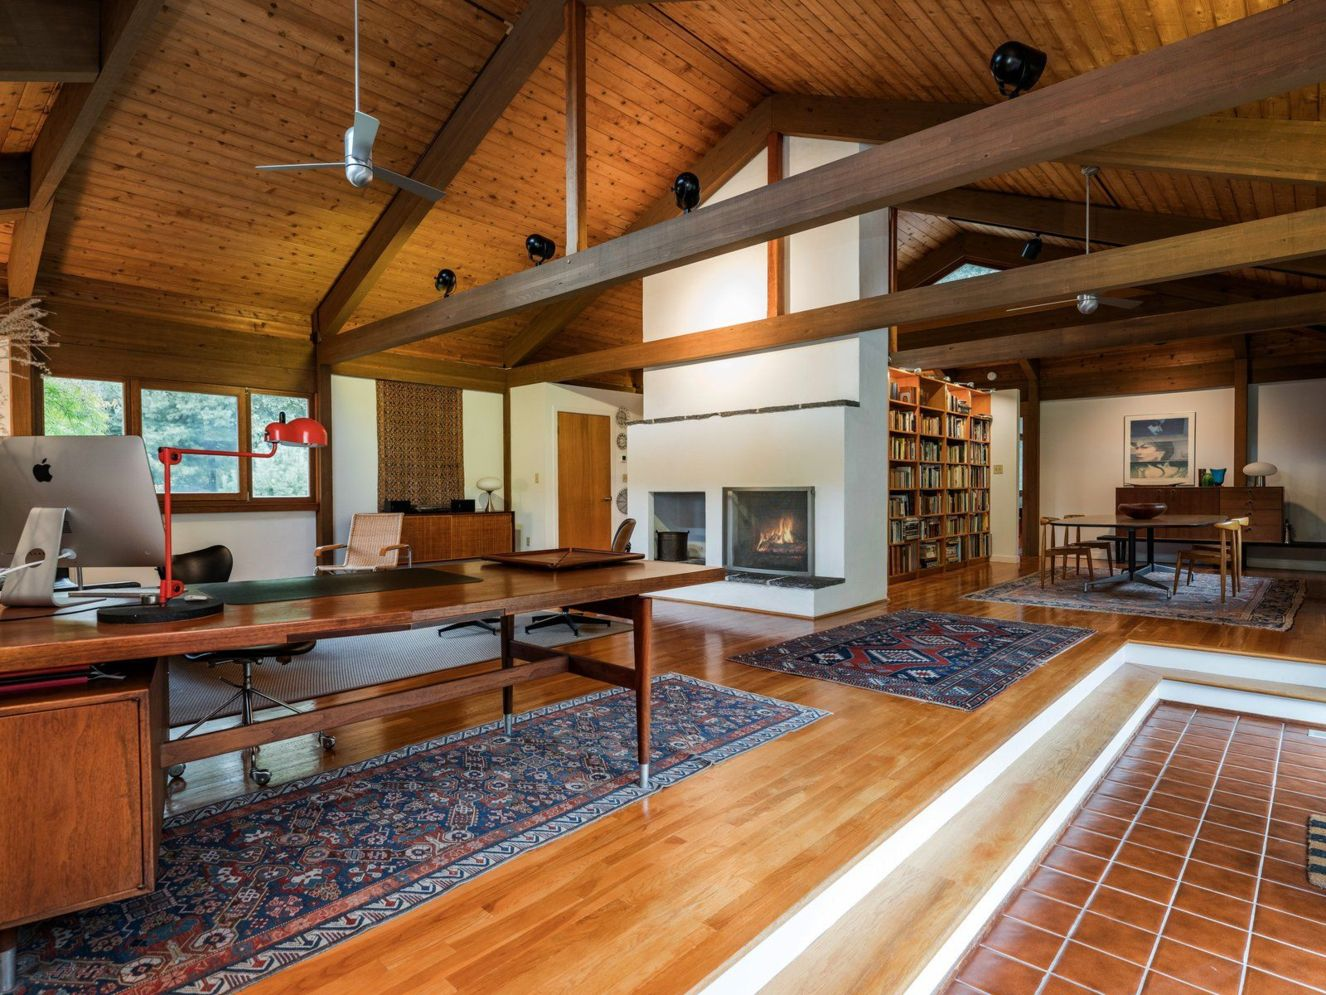 Spacious home images with vaulted ceiling showcasing grand and wonderful home design Image 31